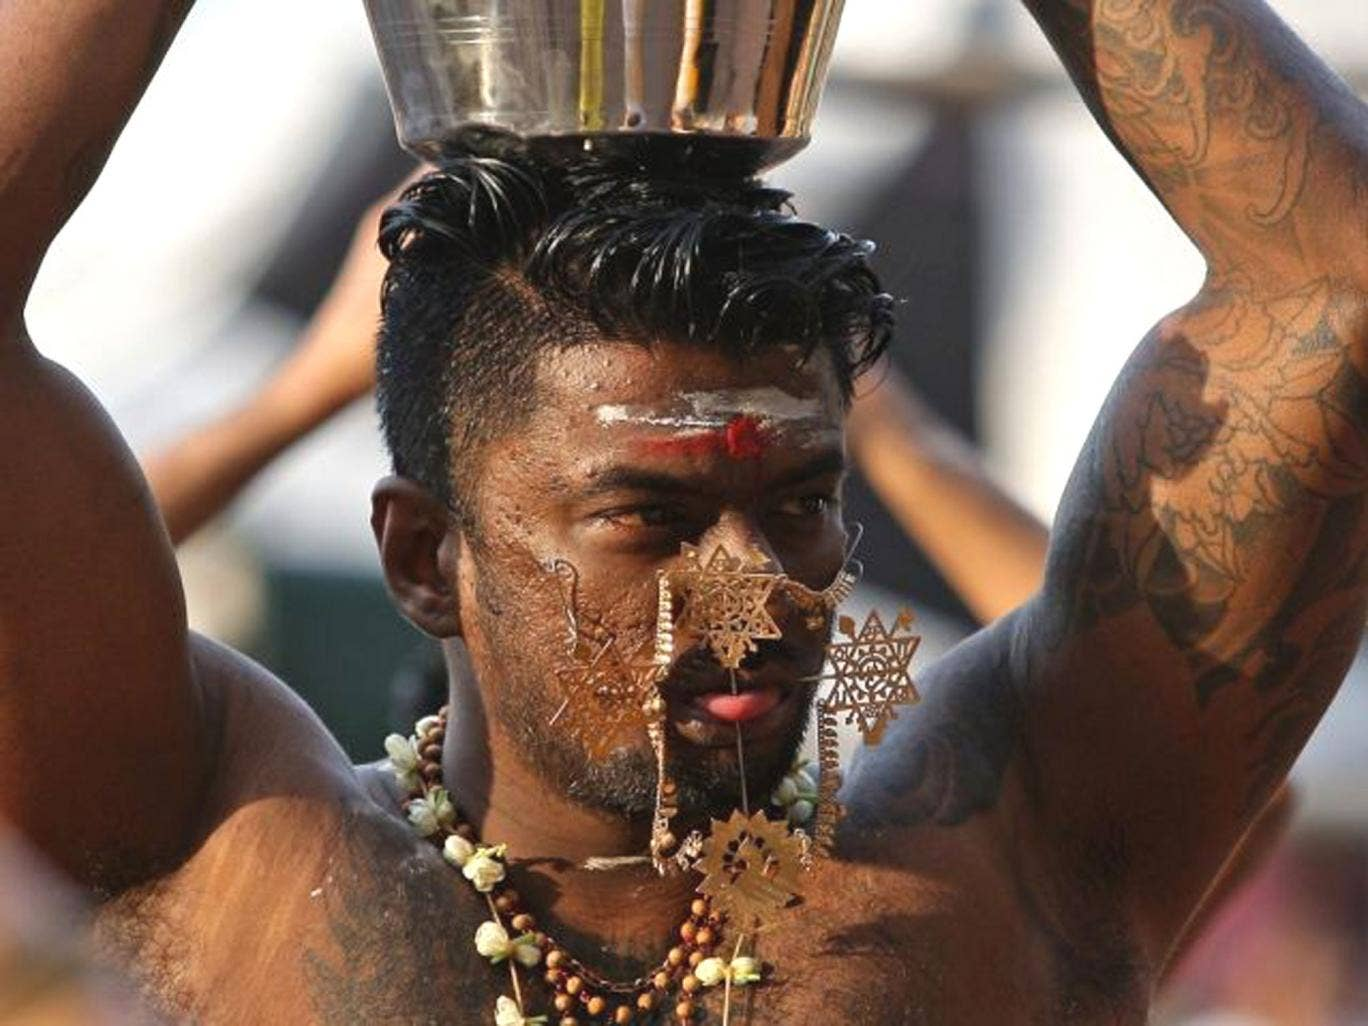 A Hindu devotee with needles protruding his cheeks walks towards the 272 steps taking up to the Batu Caves Temple during the Thaipusam Festival in Kuala Lumpur